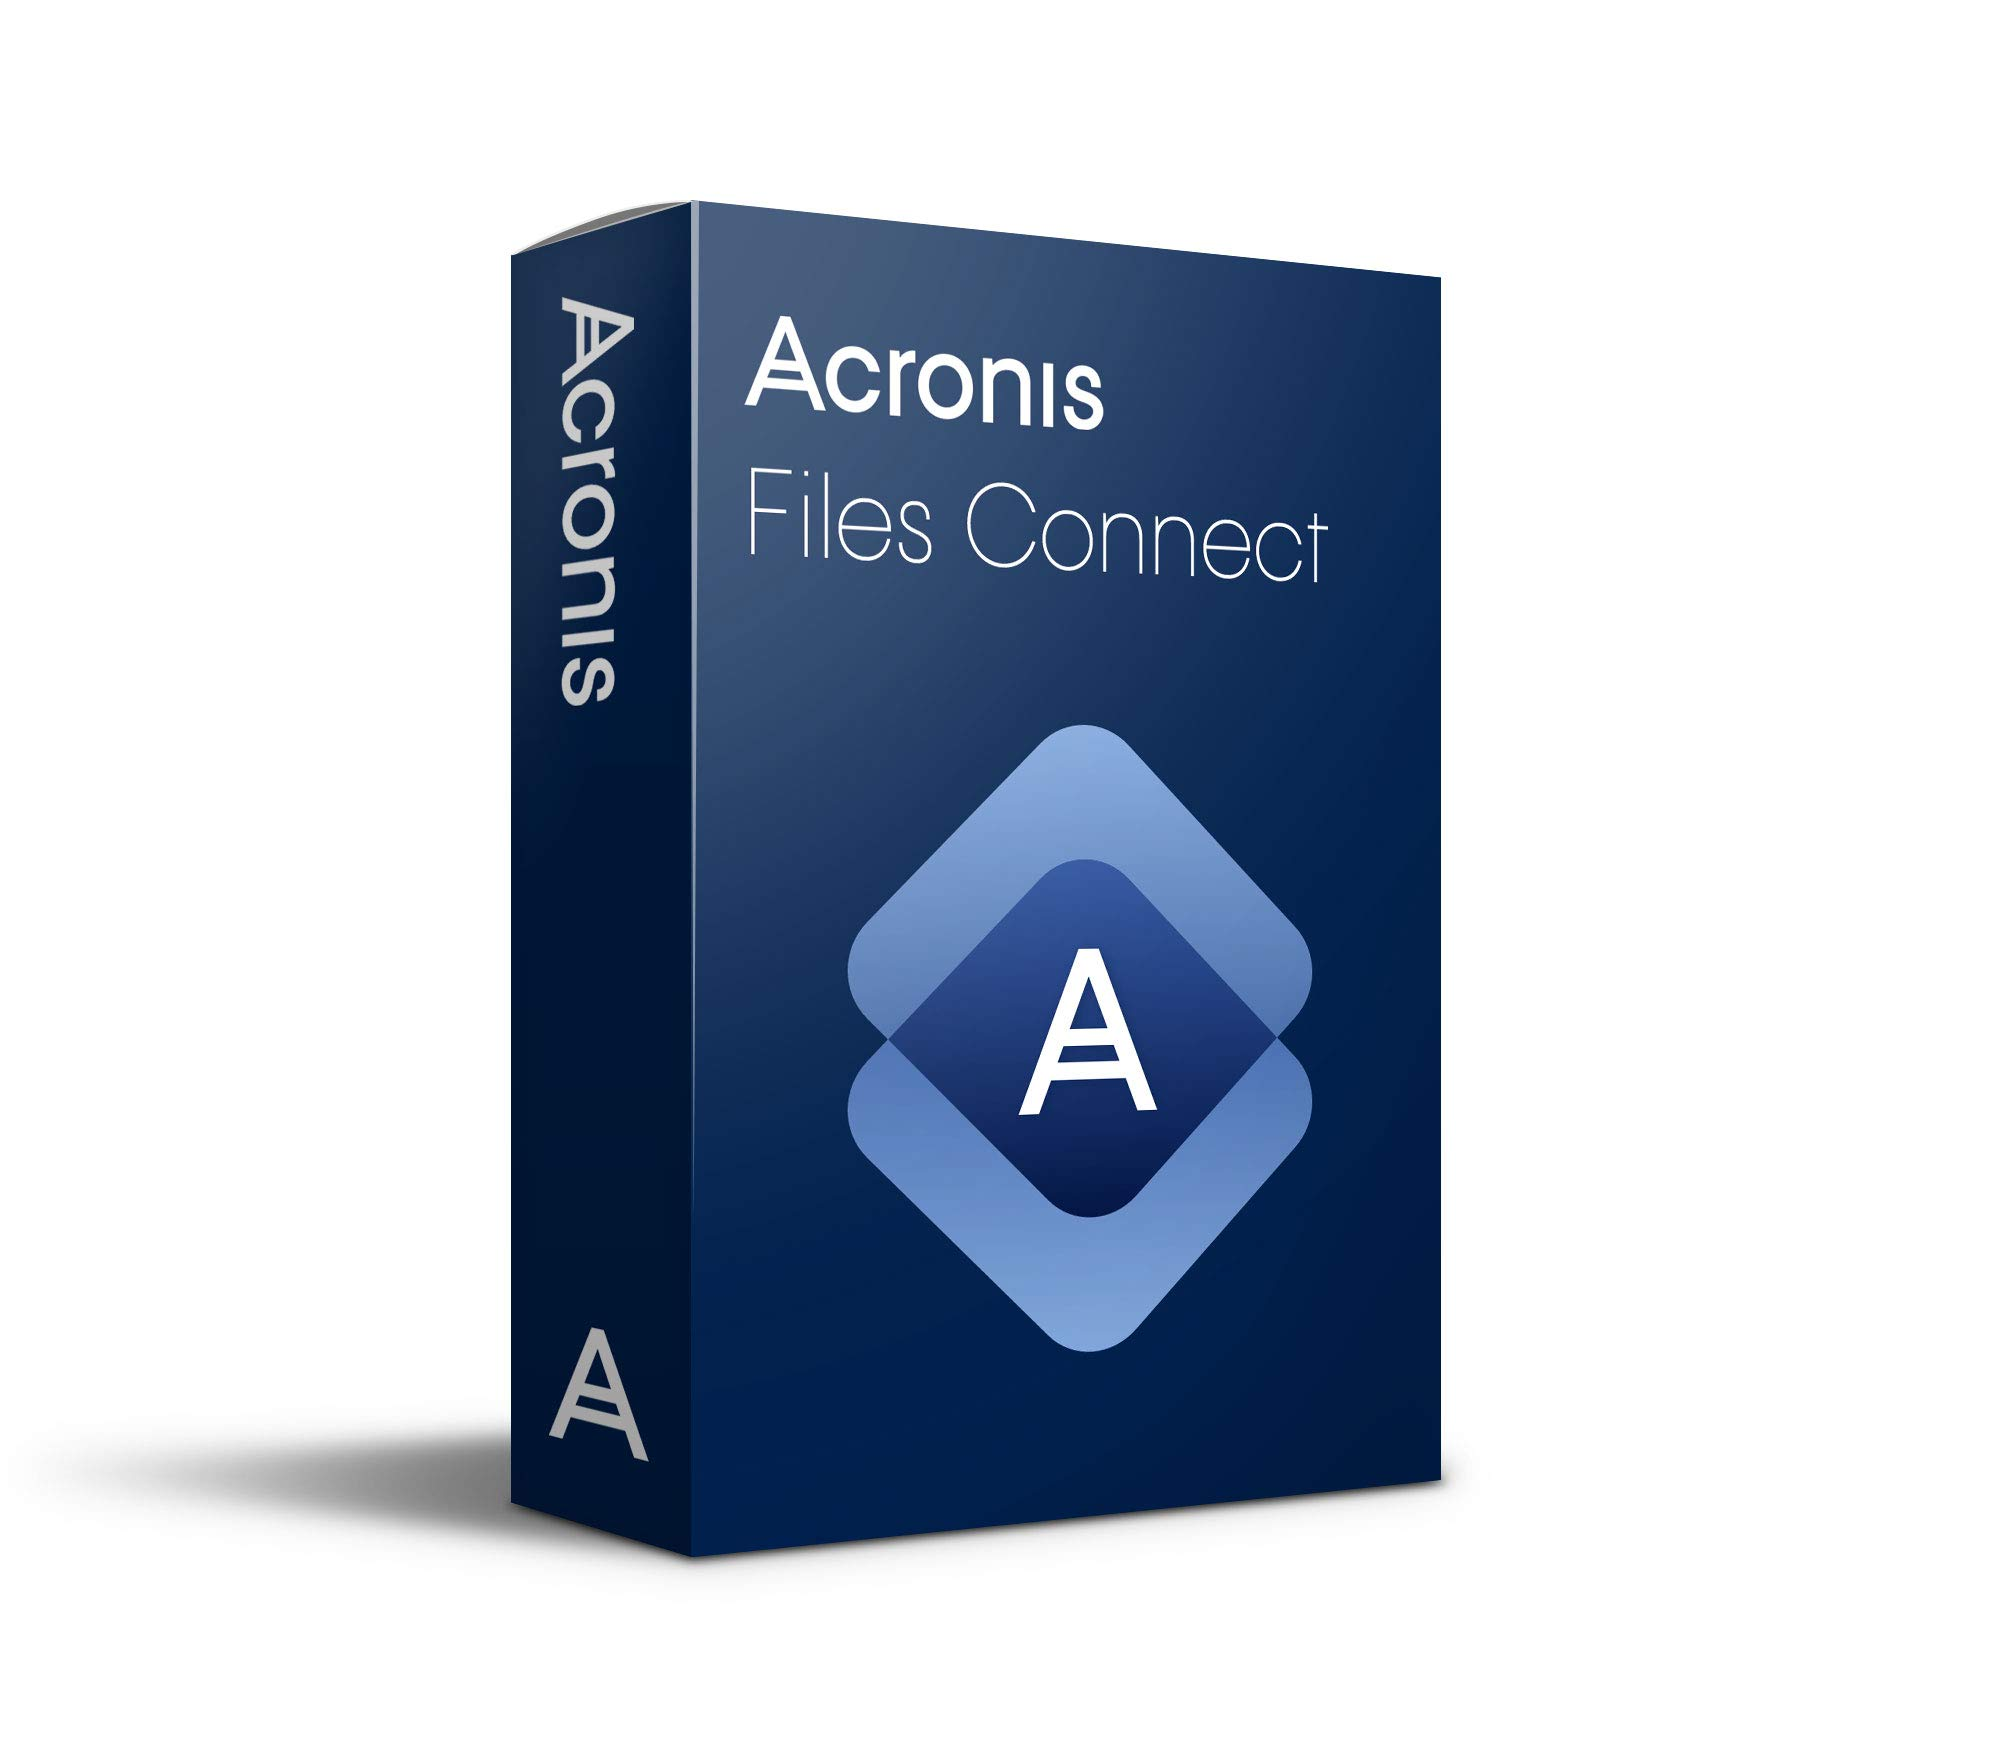 Acronis | EZUHEDENS11 | Files Connect - Enterprise Licensing Program Annual Base License, price per user - 25 maximum allowed Supported Devices by Acronis